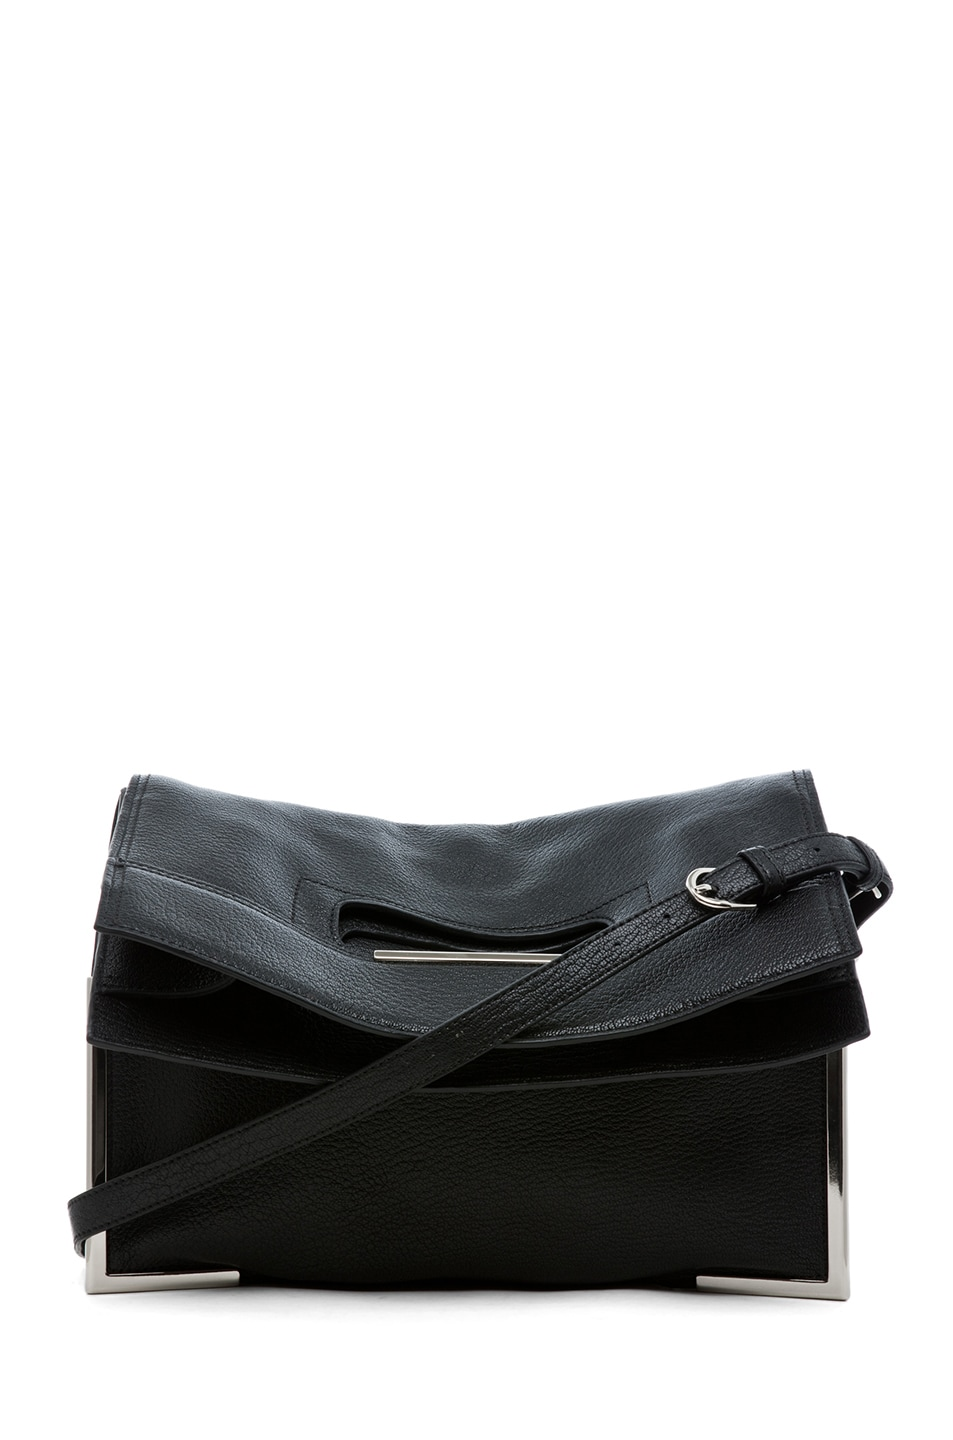 Image 1 of 3.1 phillip lim Lux Grain Convertible Cut Out Handle Tote in Black